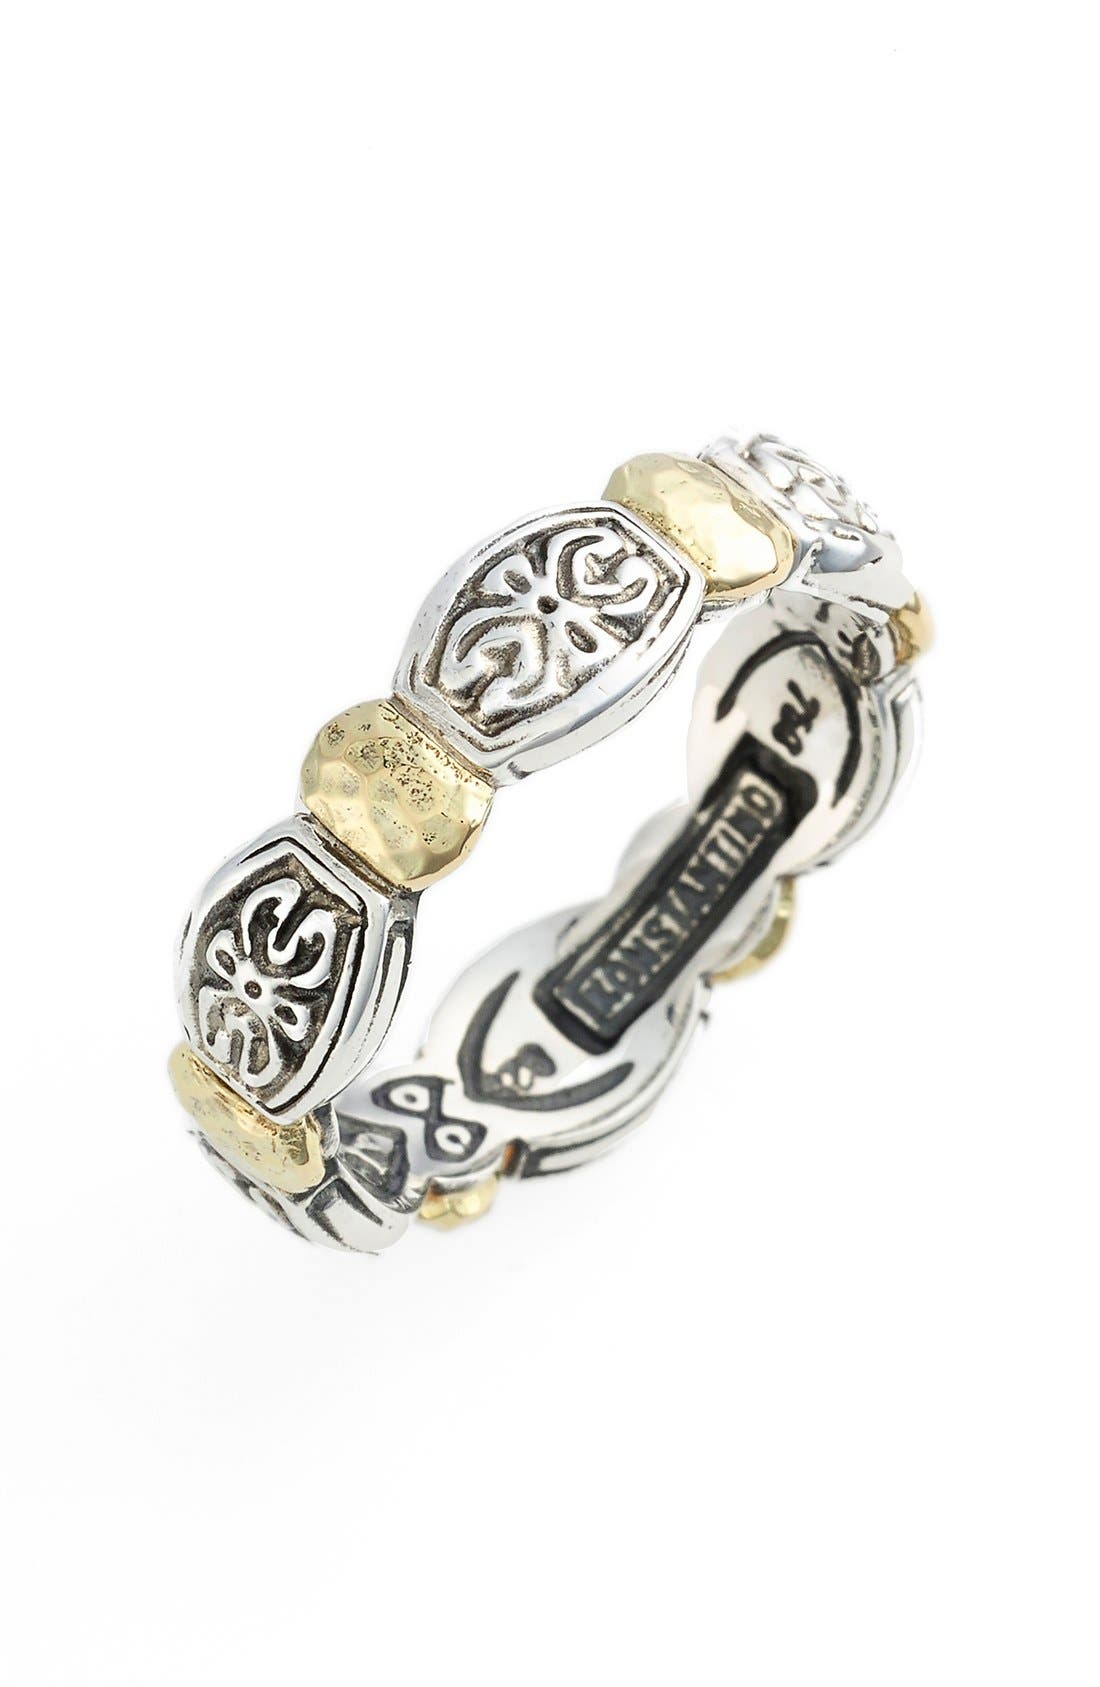 Main Image - Konstantino 'Aspasia' Hammered Band Ring